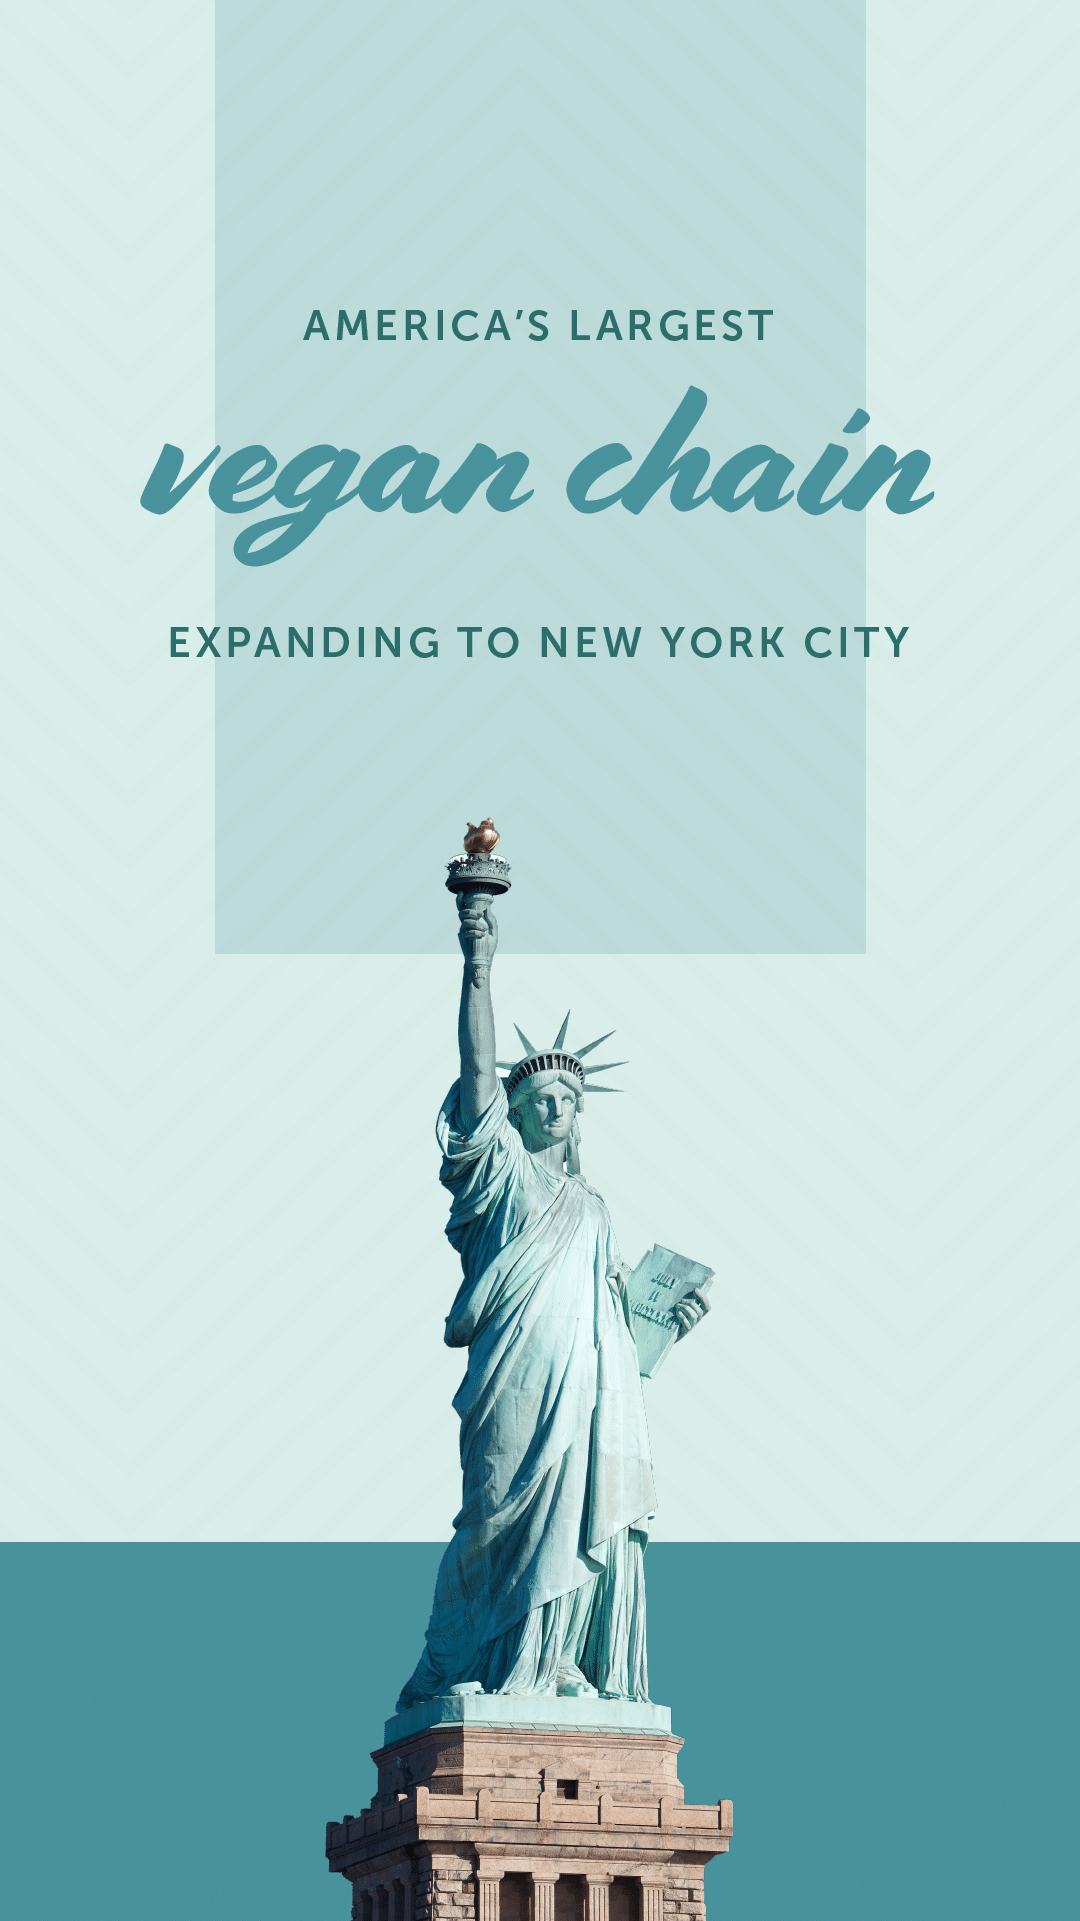 America's Largest Vegan Chain Expanding to New York City